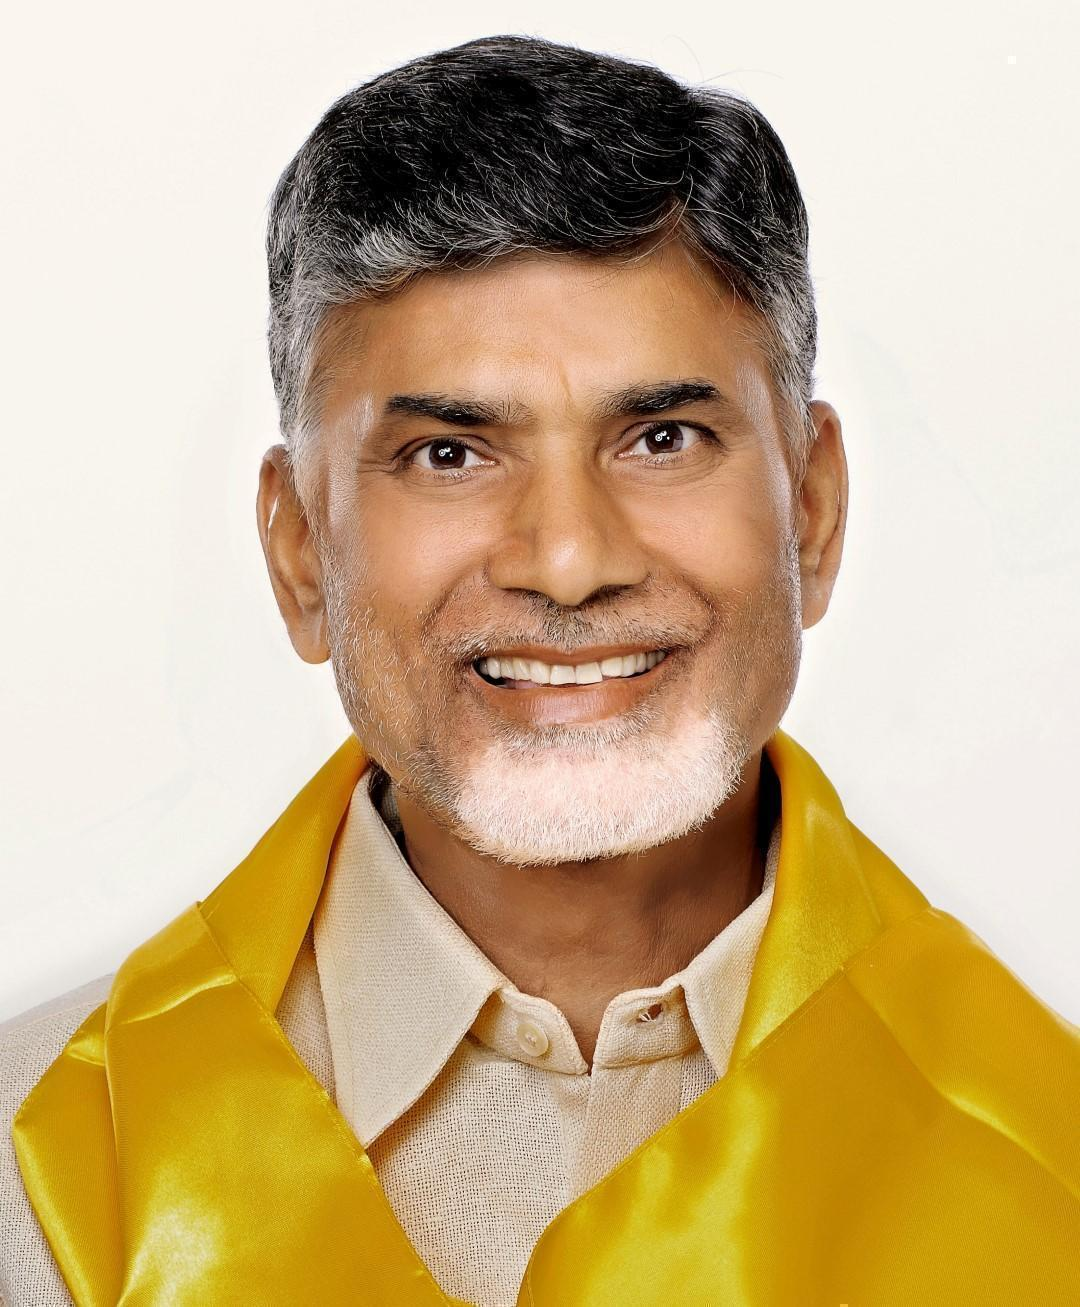 SRI NARA CHANDRA BABU NAIDU